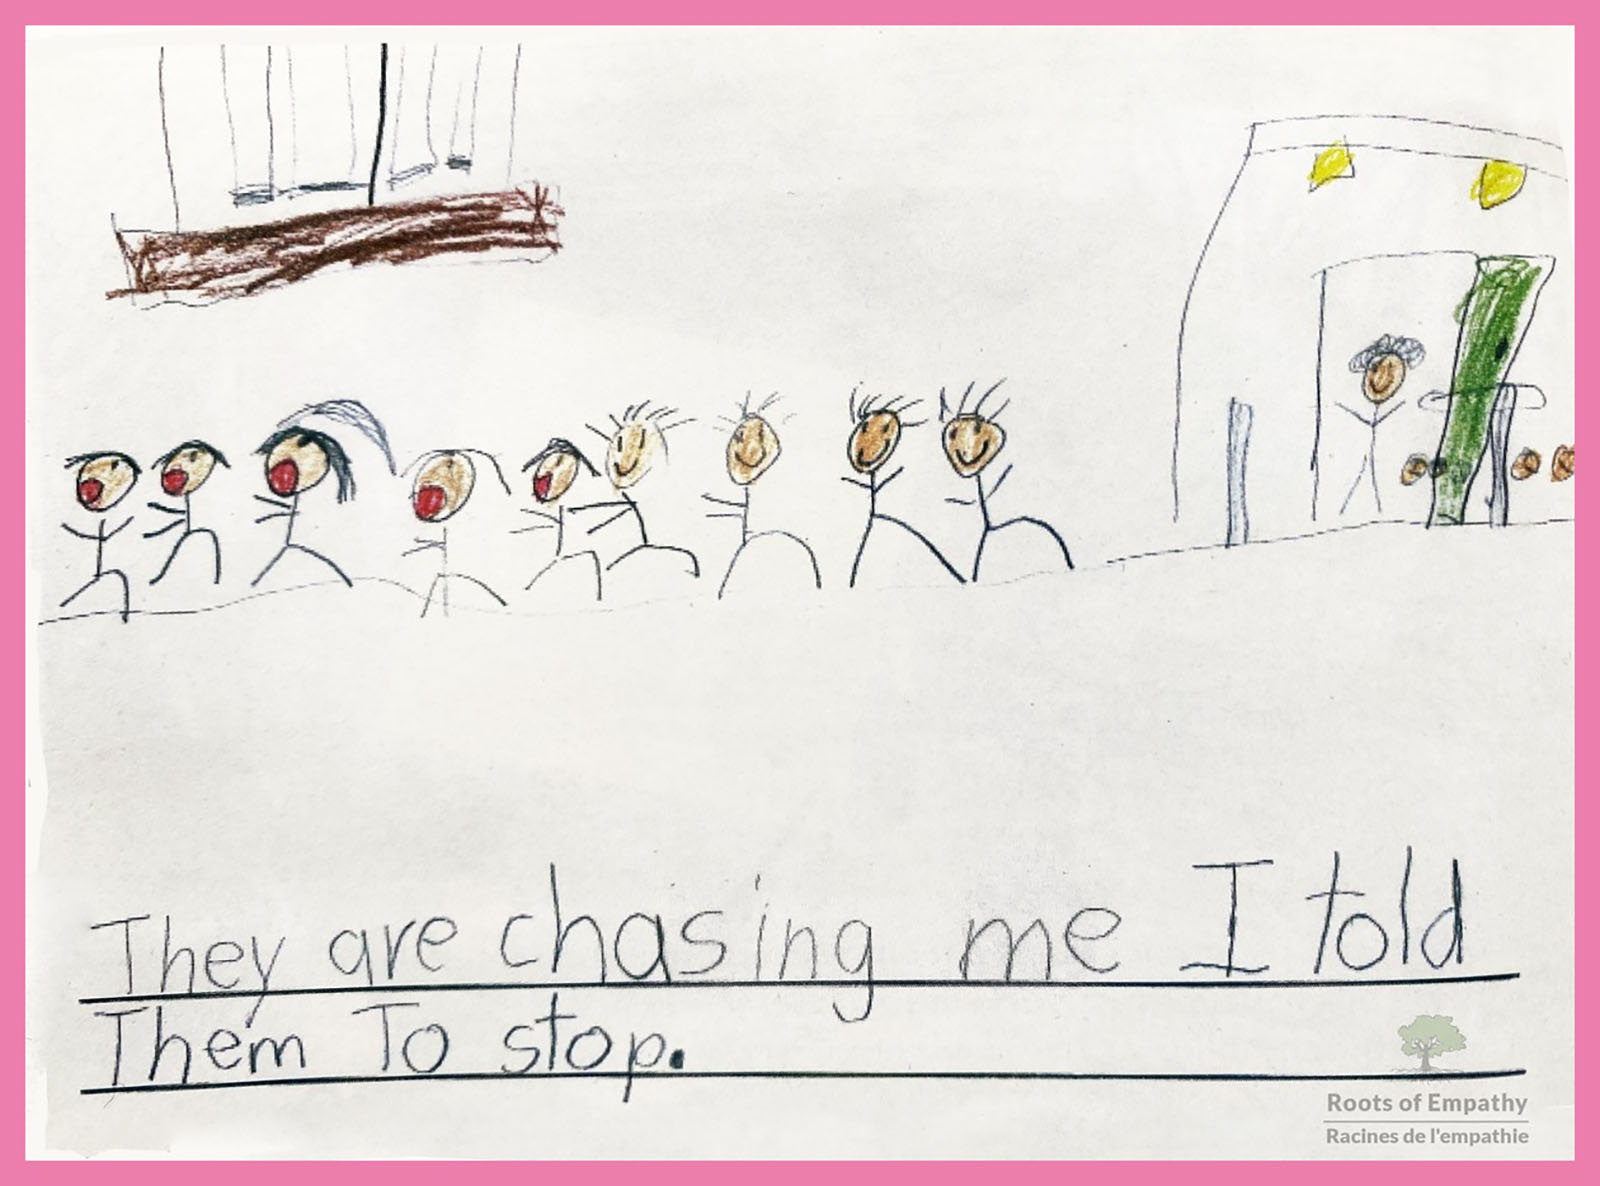 A little girl has drawn a picture of herself being chased after by 8 children in the school yard beside her school